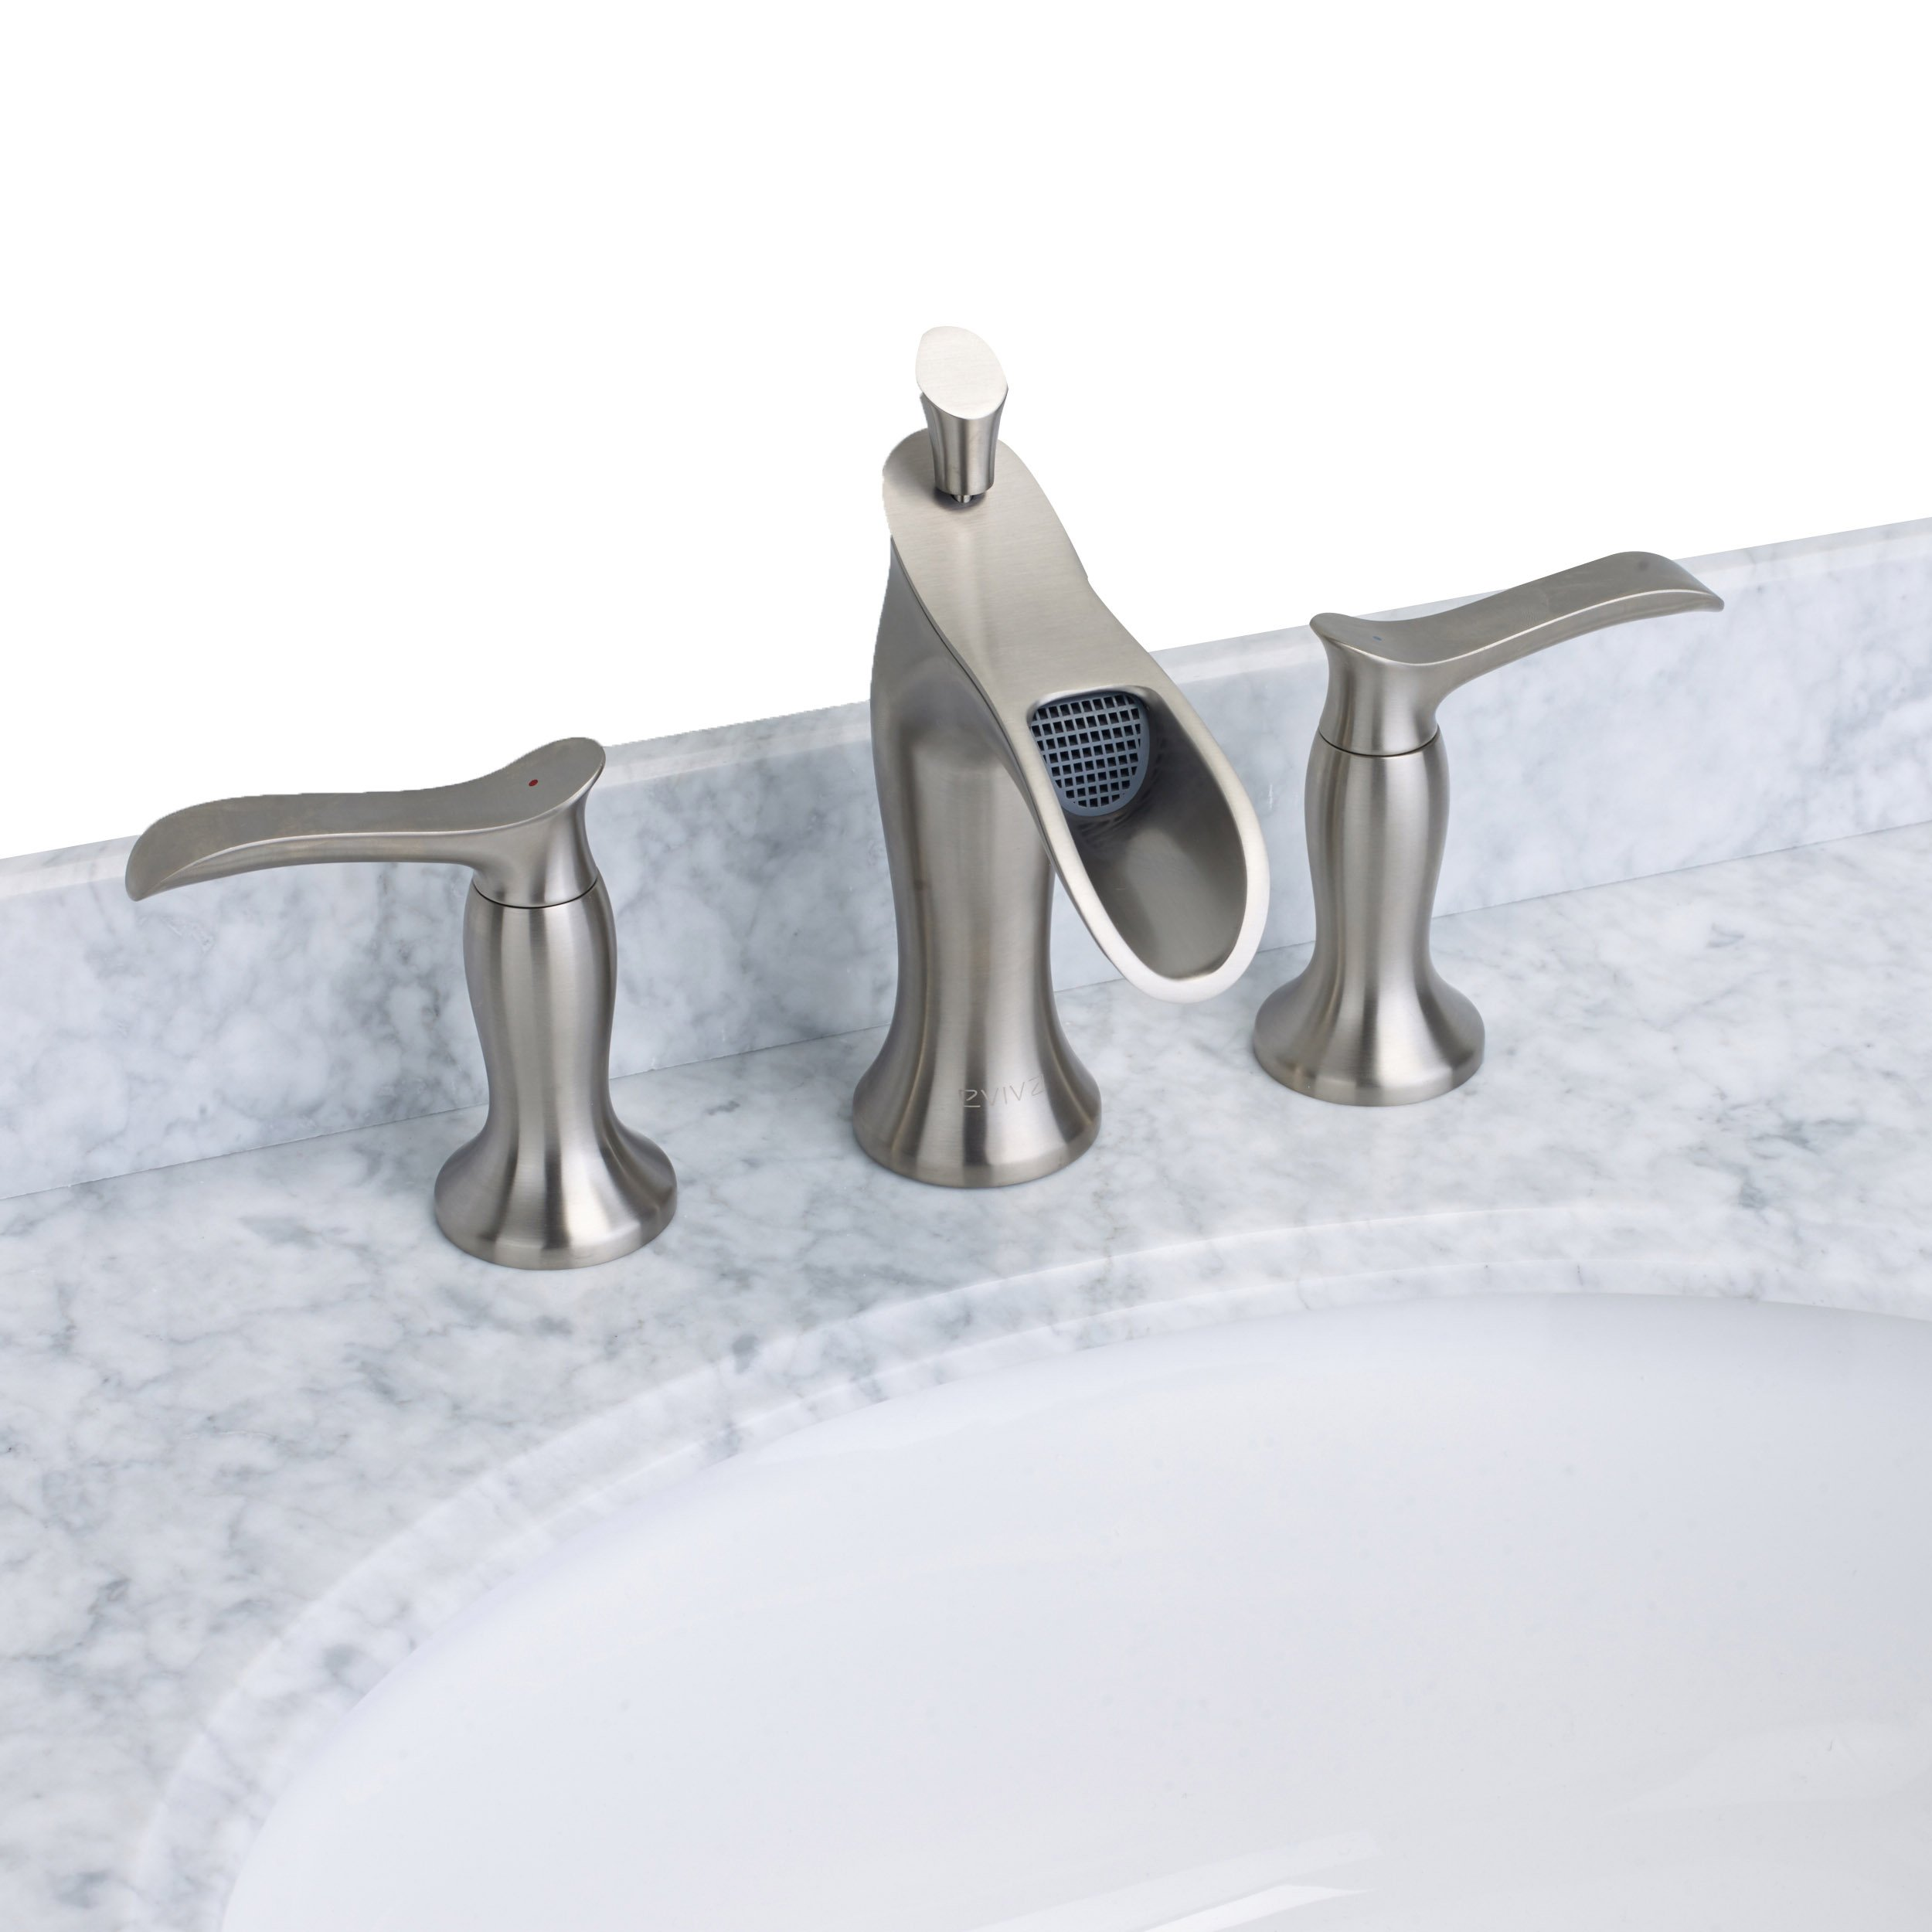 Eviva Evft466Bn Swan Luxury Water-Fall Widespread 3-Hole (2 Handles) Bathroom Sink Faucet (Brushed Nickel) Combination